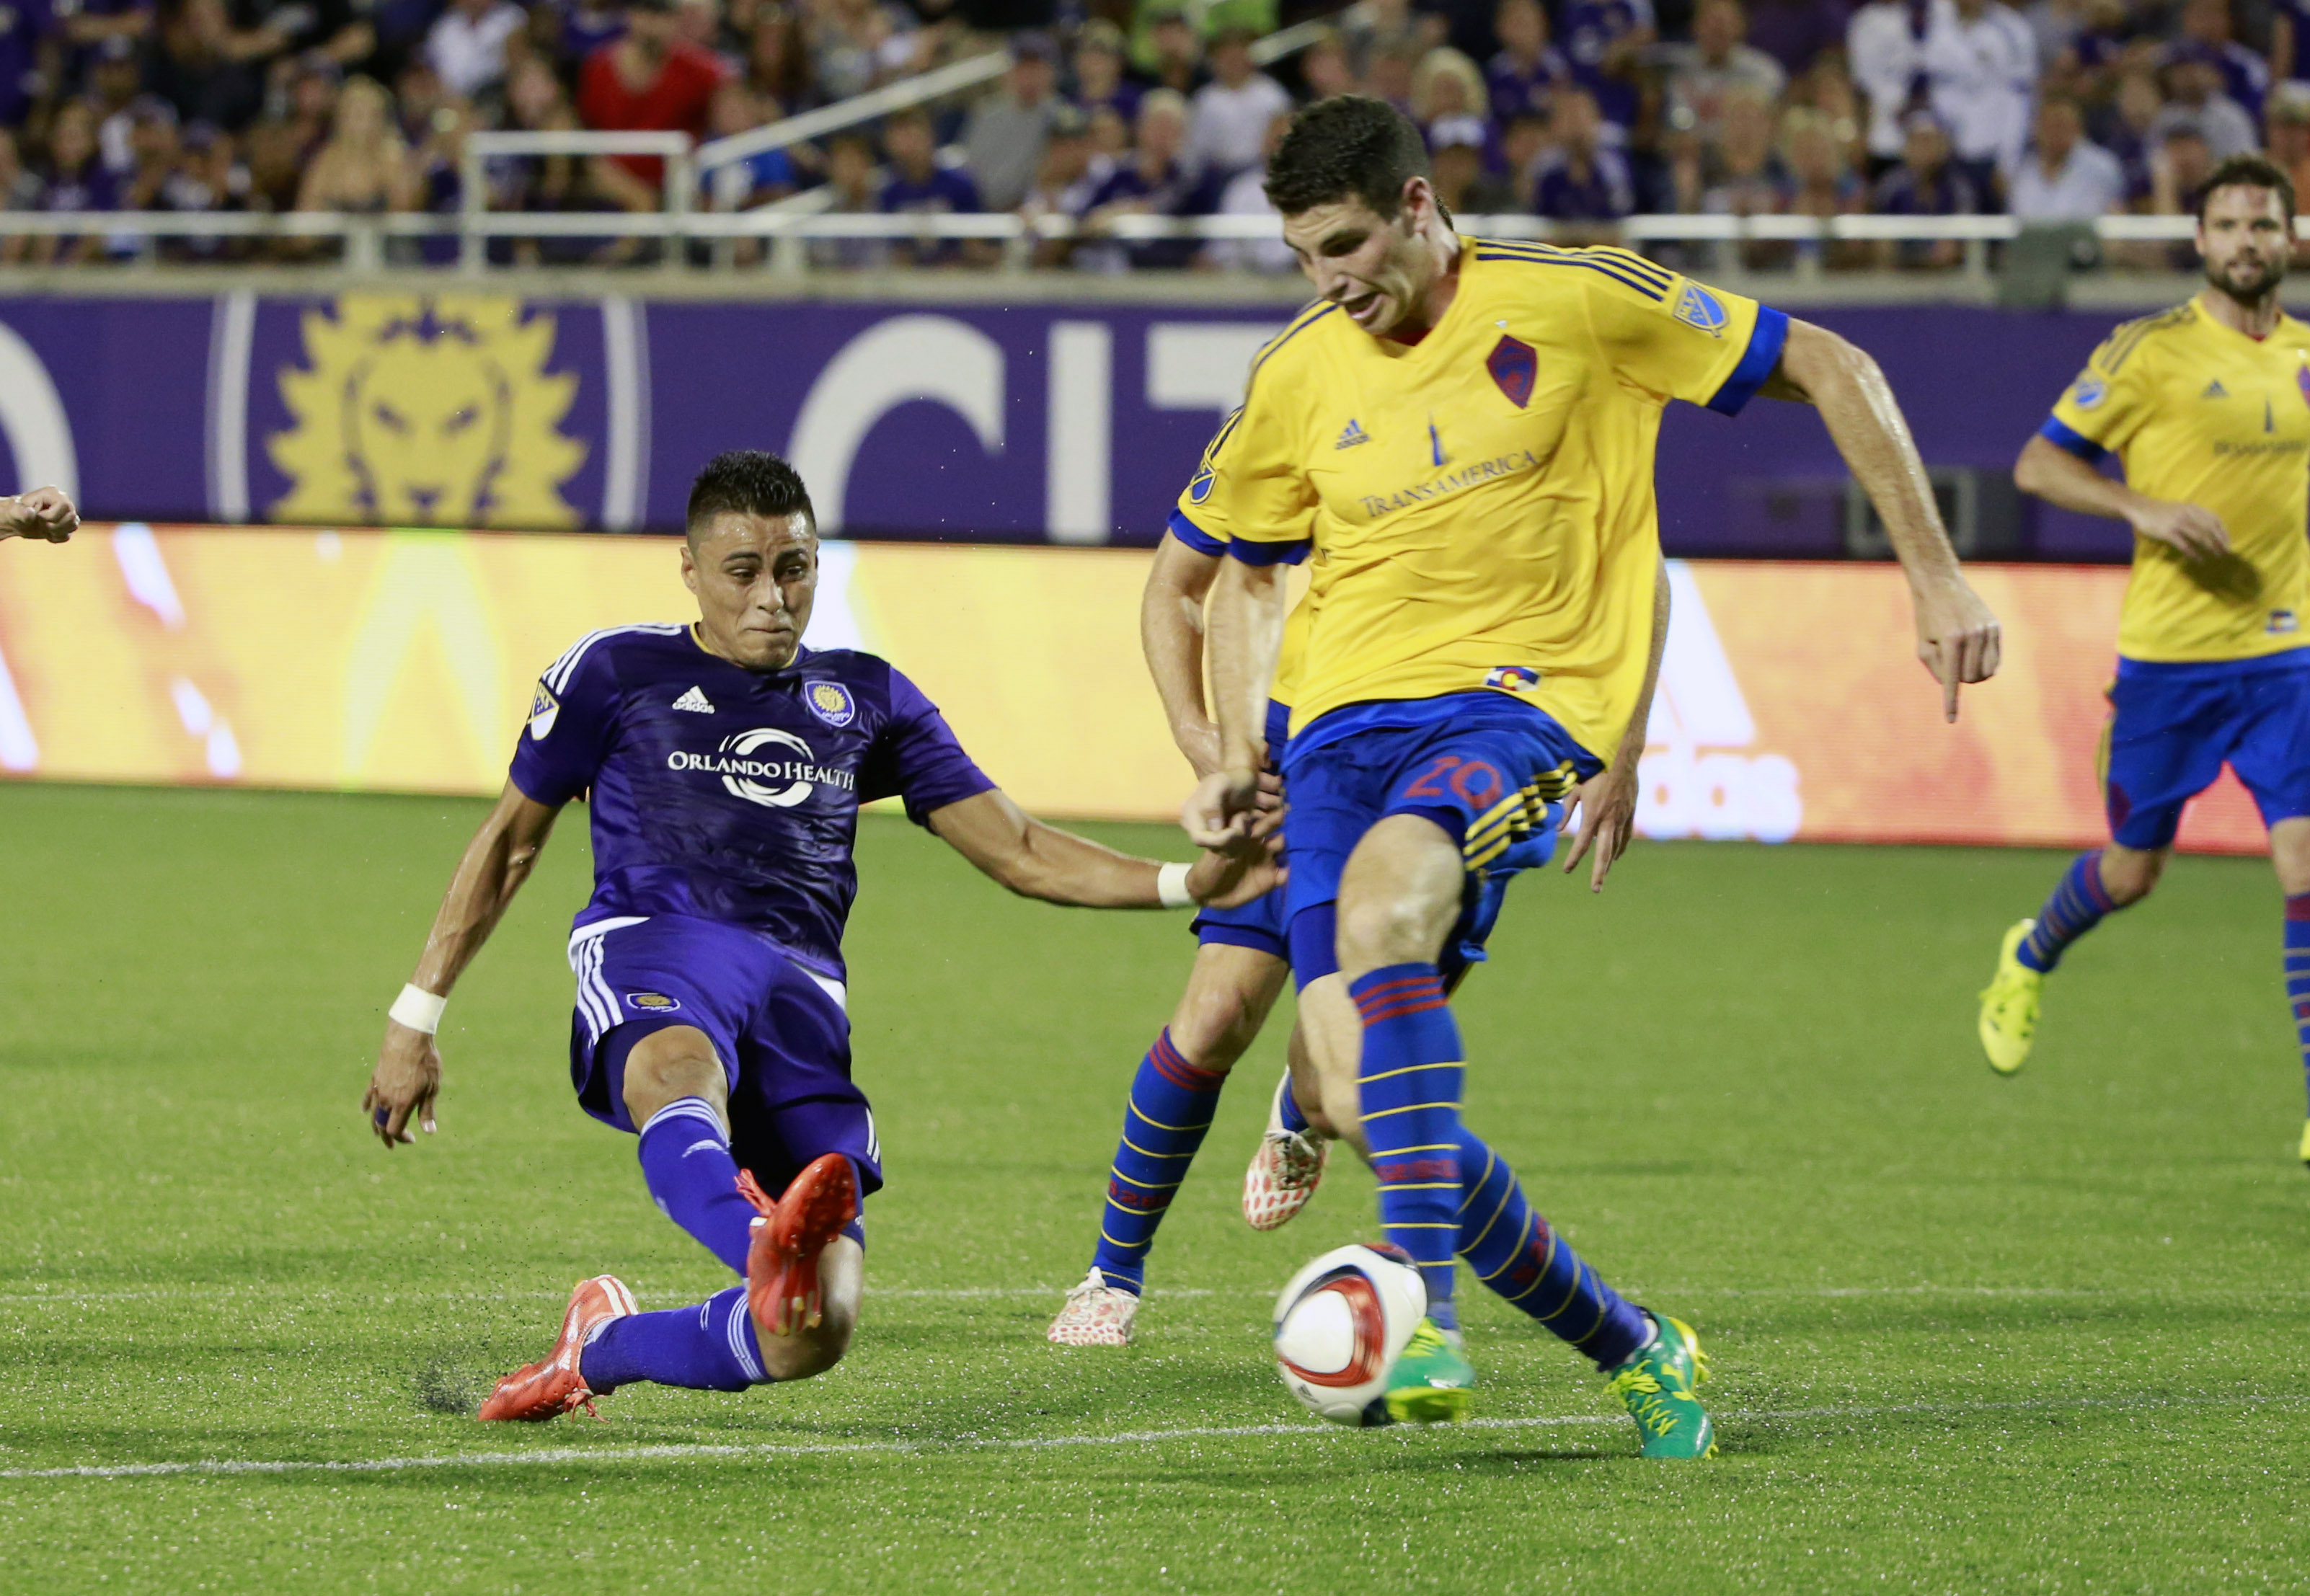 Josephy Greenspan making a challenge in the box and winning possession of the ball.